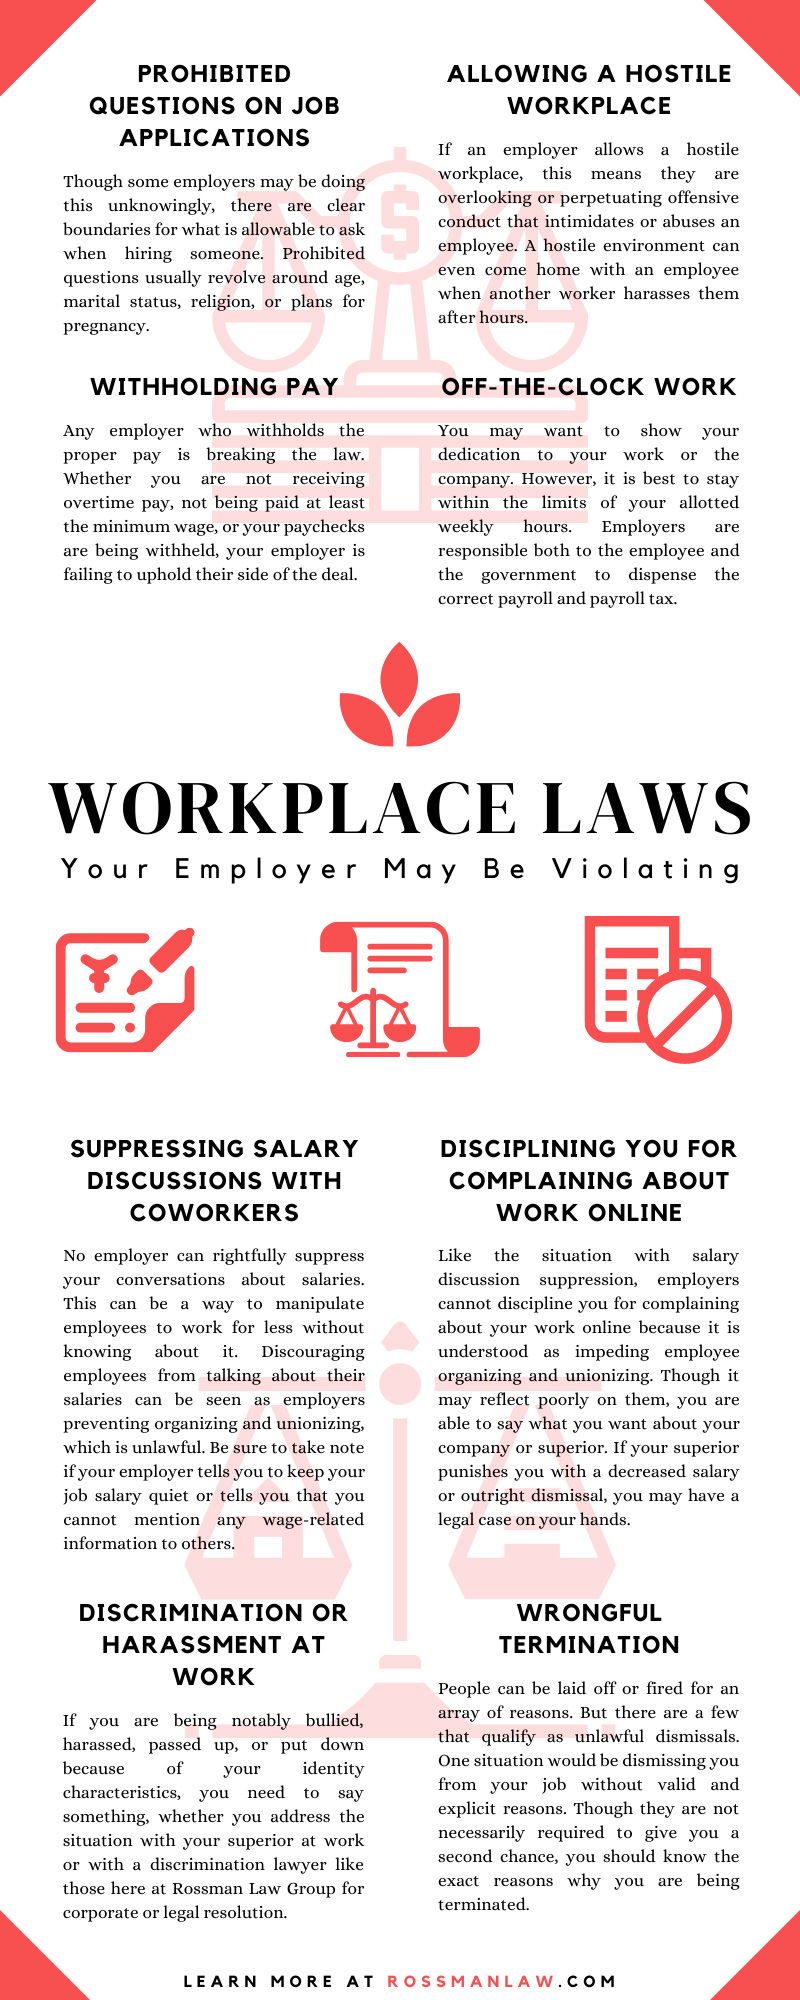 Workplace Laws Your Employer May Be Violating